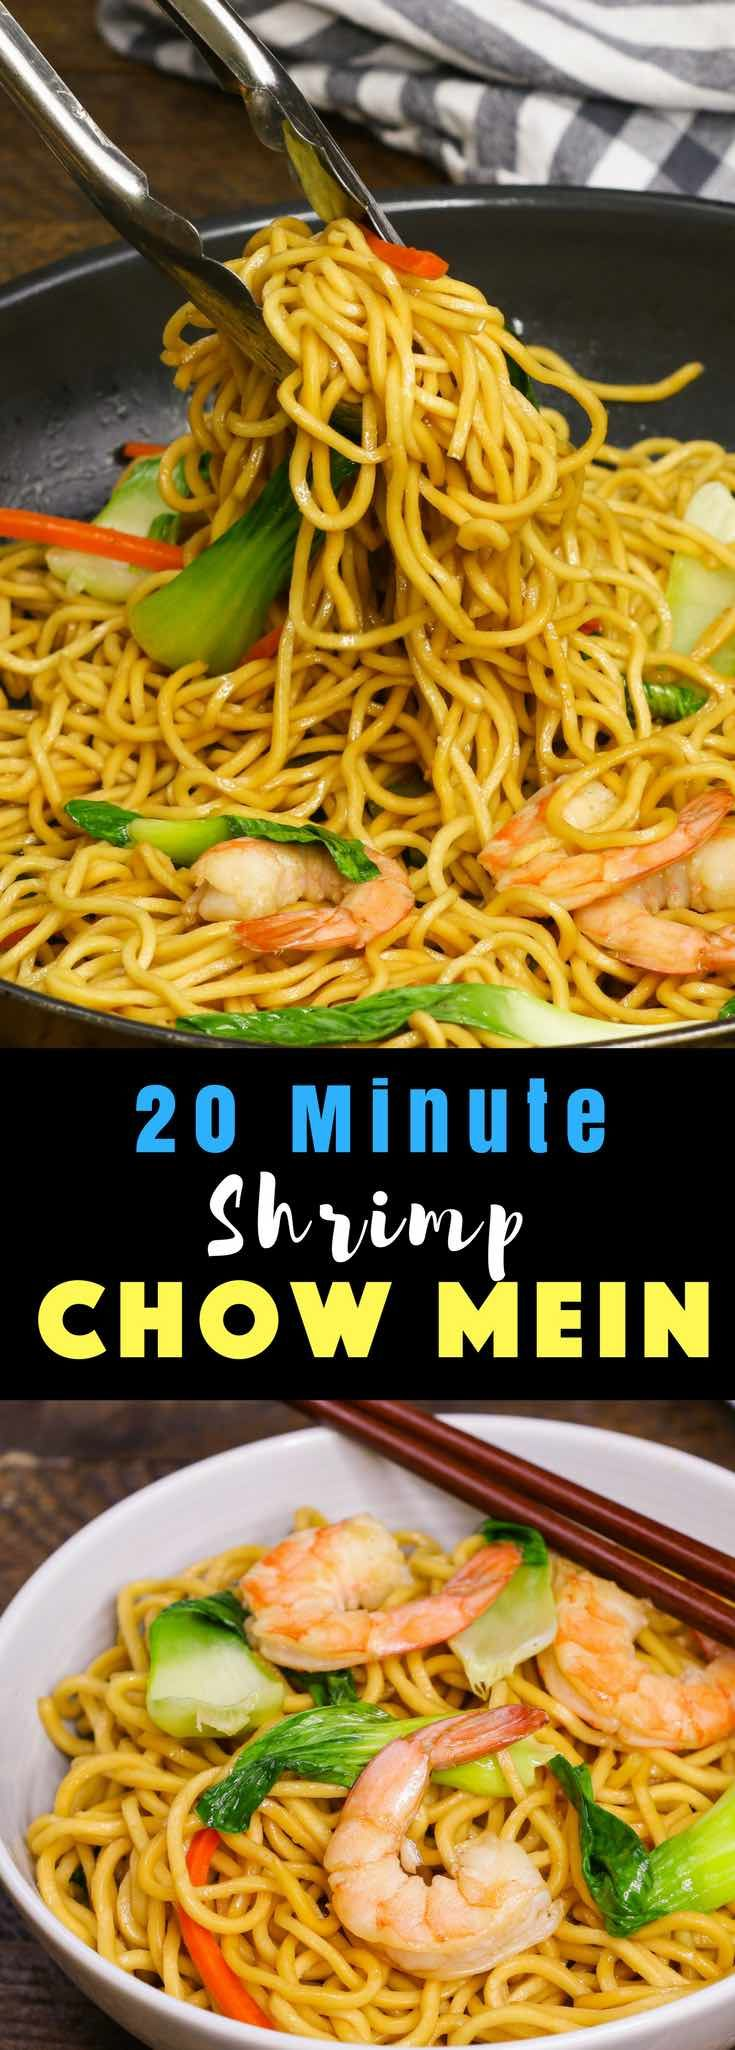 ThisShrimp Chow Mein is a quick and easy one pot meal, loaded with sizzling shrimp, flavorful vegetables and fried noodles. It's so delicious and you will find yourself making it again and again as a quick weeknight dinner! #ShrimpRecipe #ChowMein #ShrimpChowMein